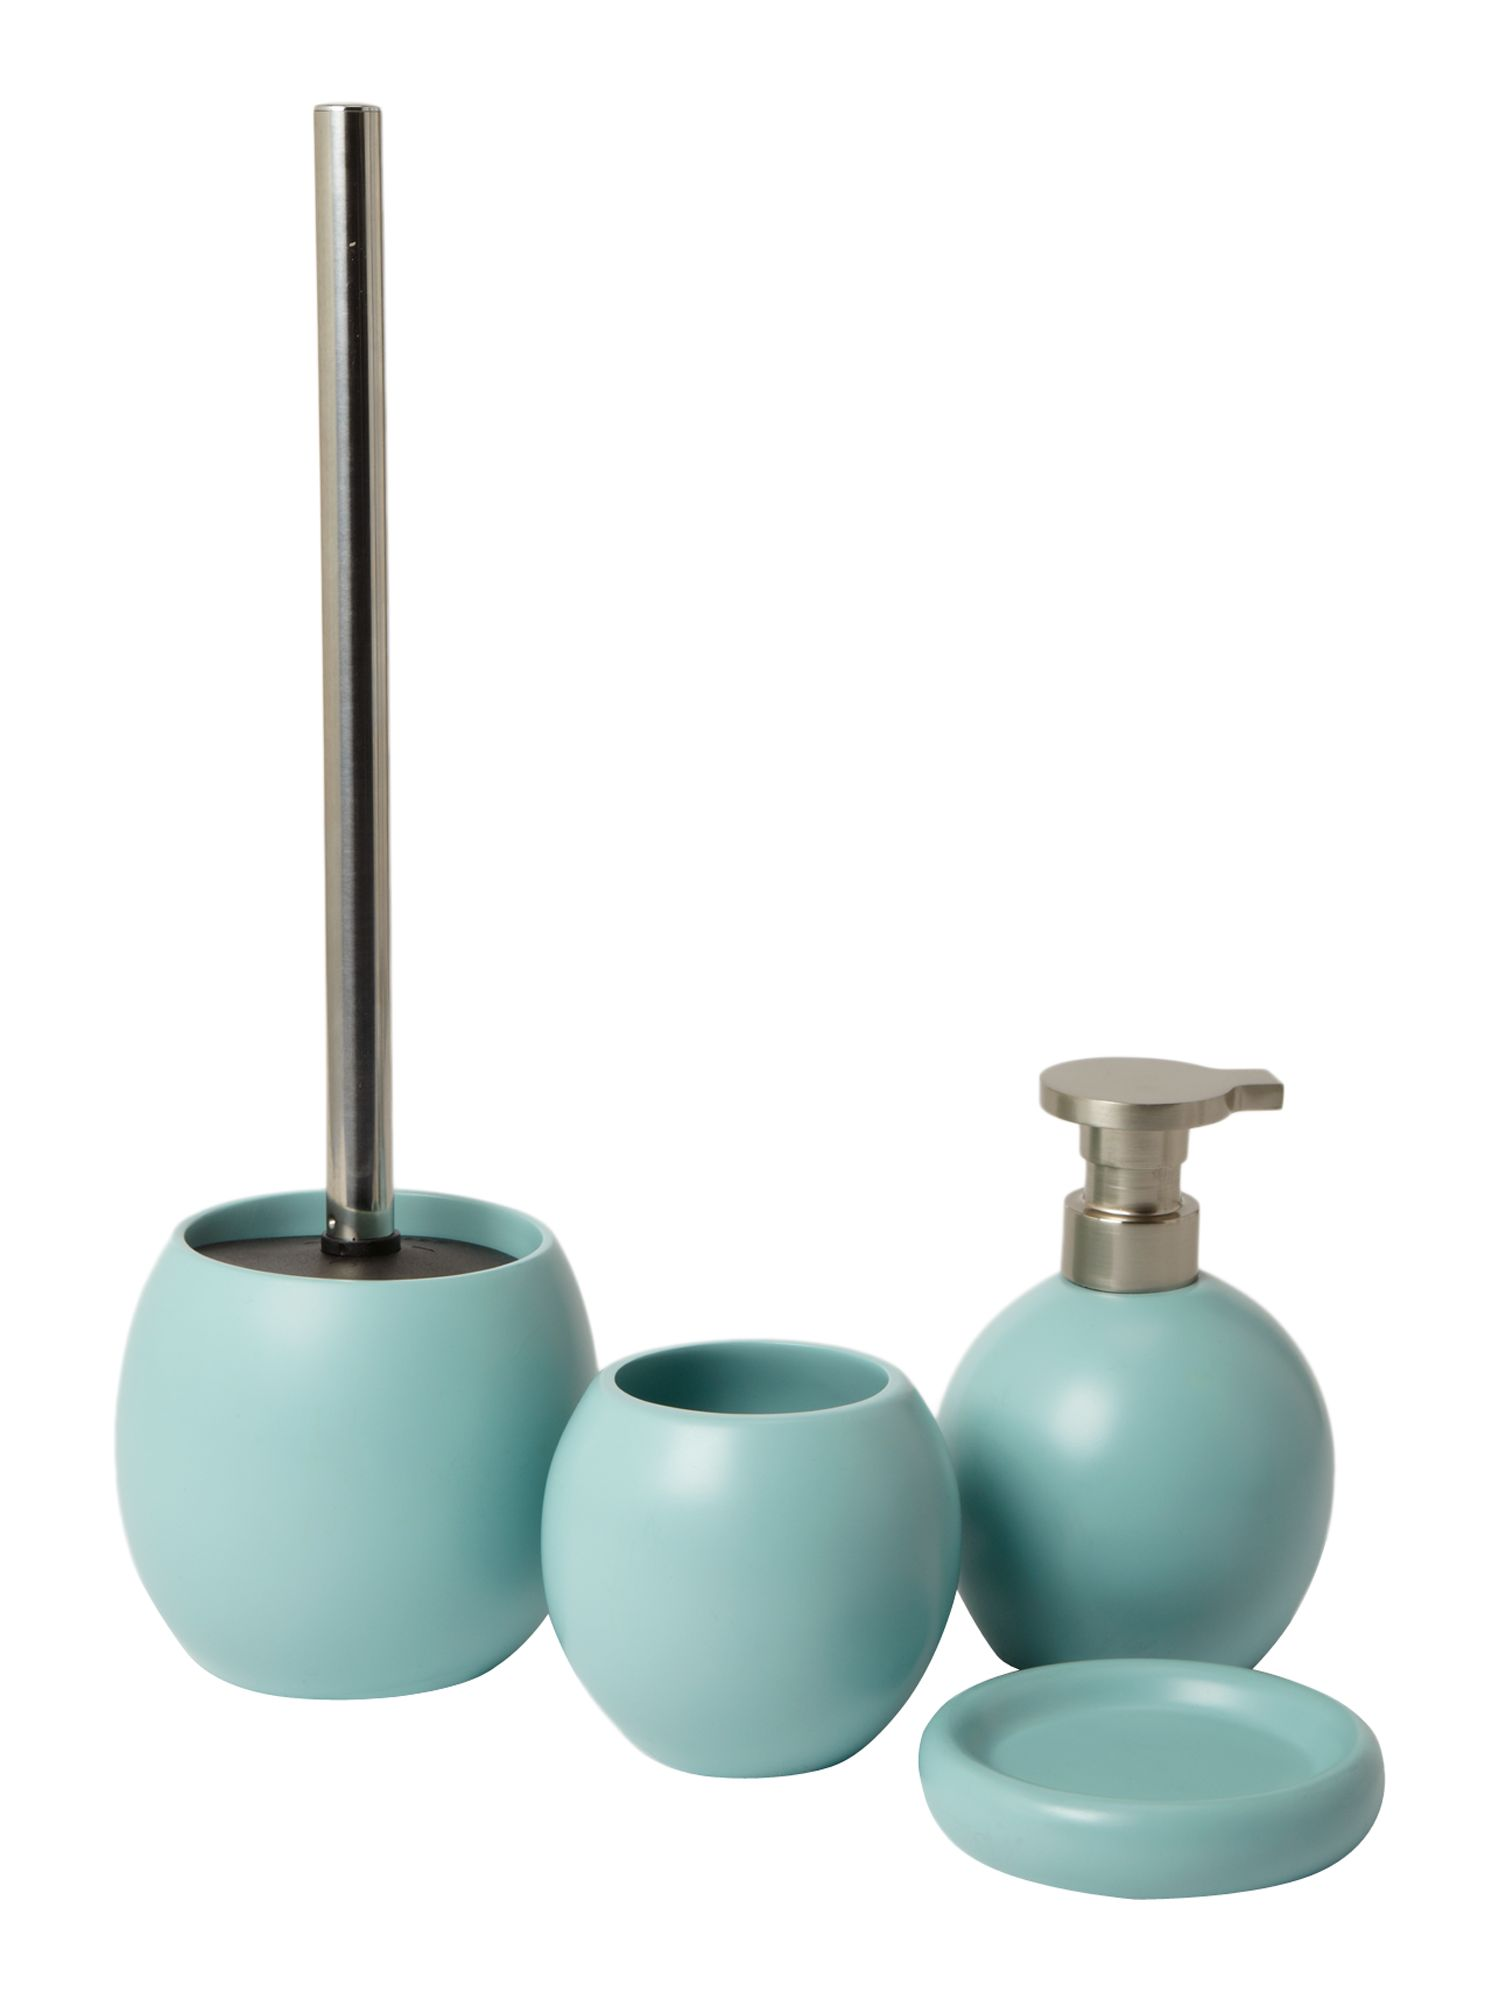 Linea Round Accessories In Duckegg  House Of Fraser. Party Decorating Ideas. Cottage Living Room Furniture. Ac Hotel Rooms. Privacy Room Dividers. Decorative Wall Paper. Italian Living Room Furniture. Decorating Tables. Dorm Room Storage